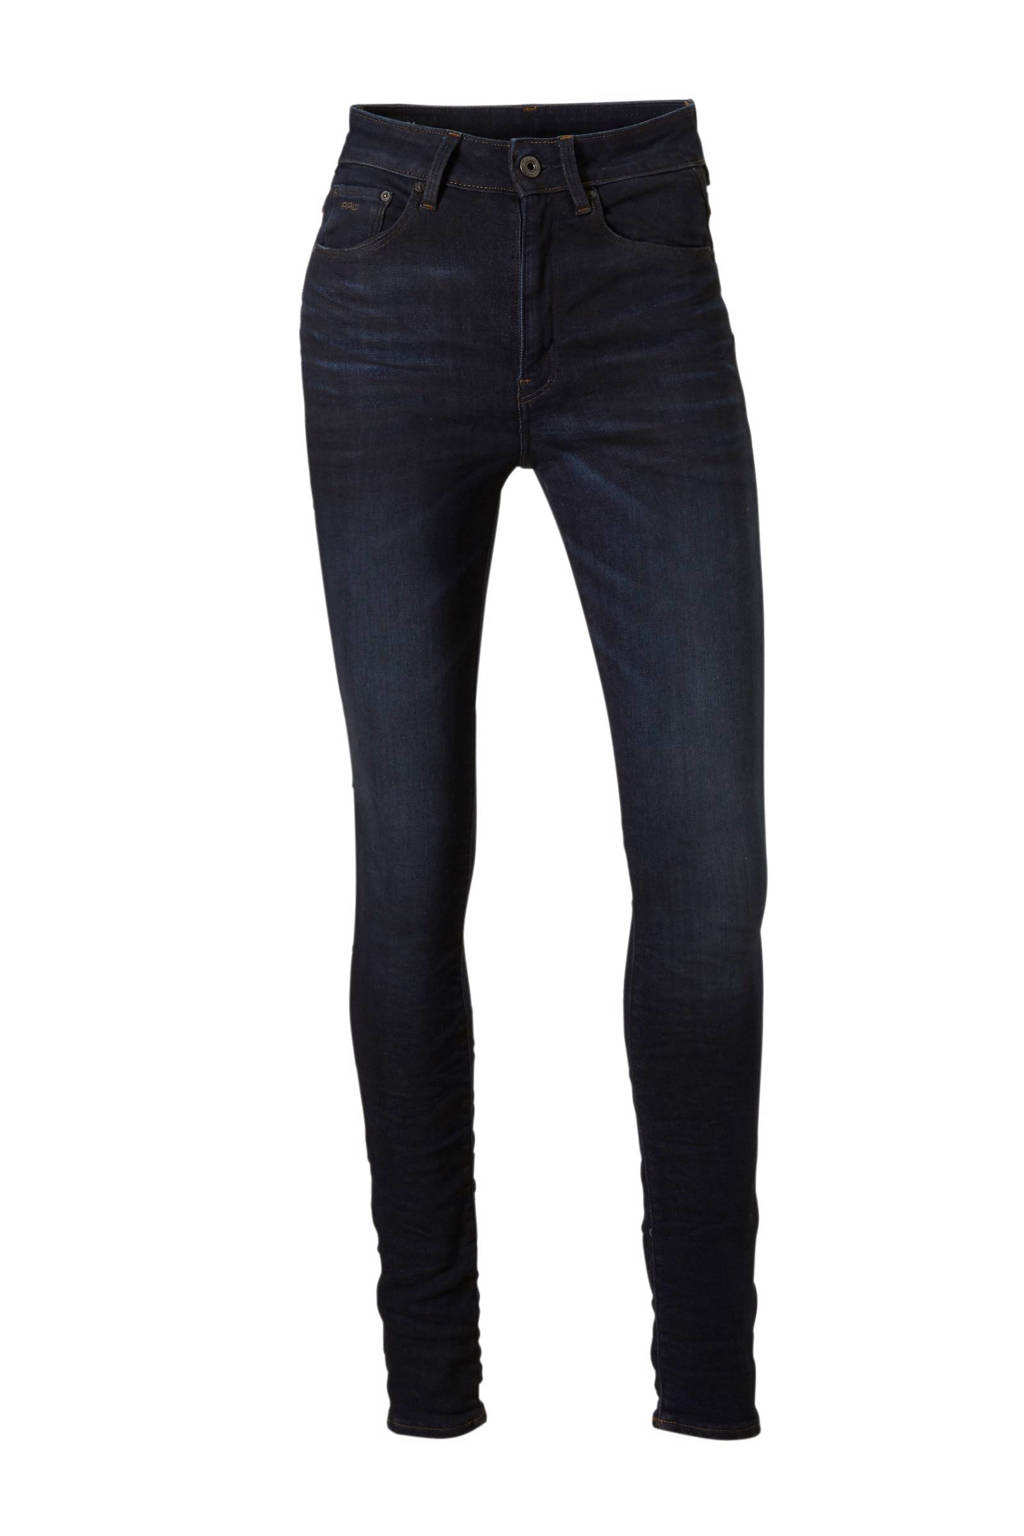 G-Star RAW 3301 Ultra High Skinny jeans, Blauw